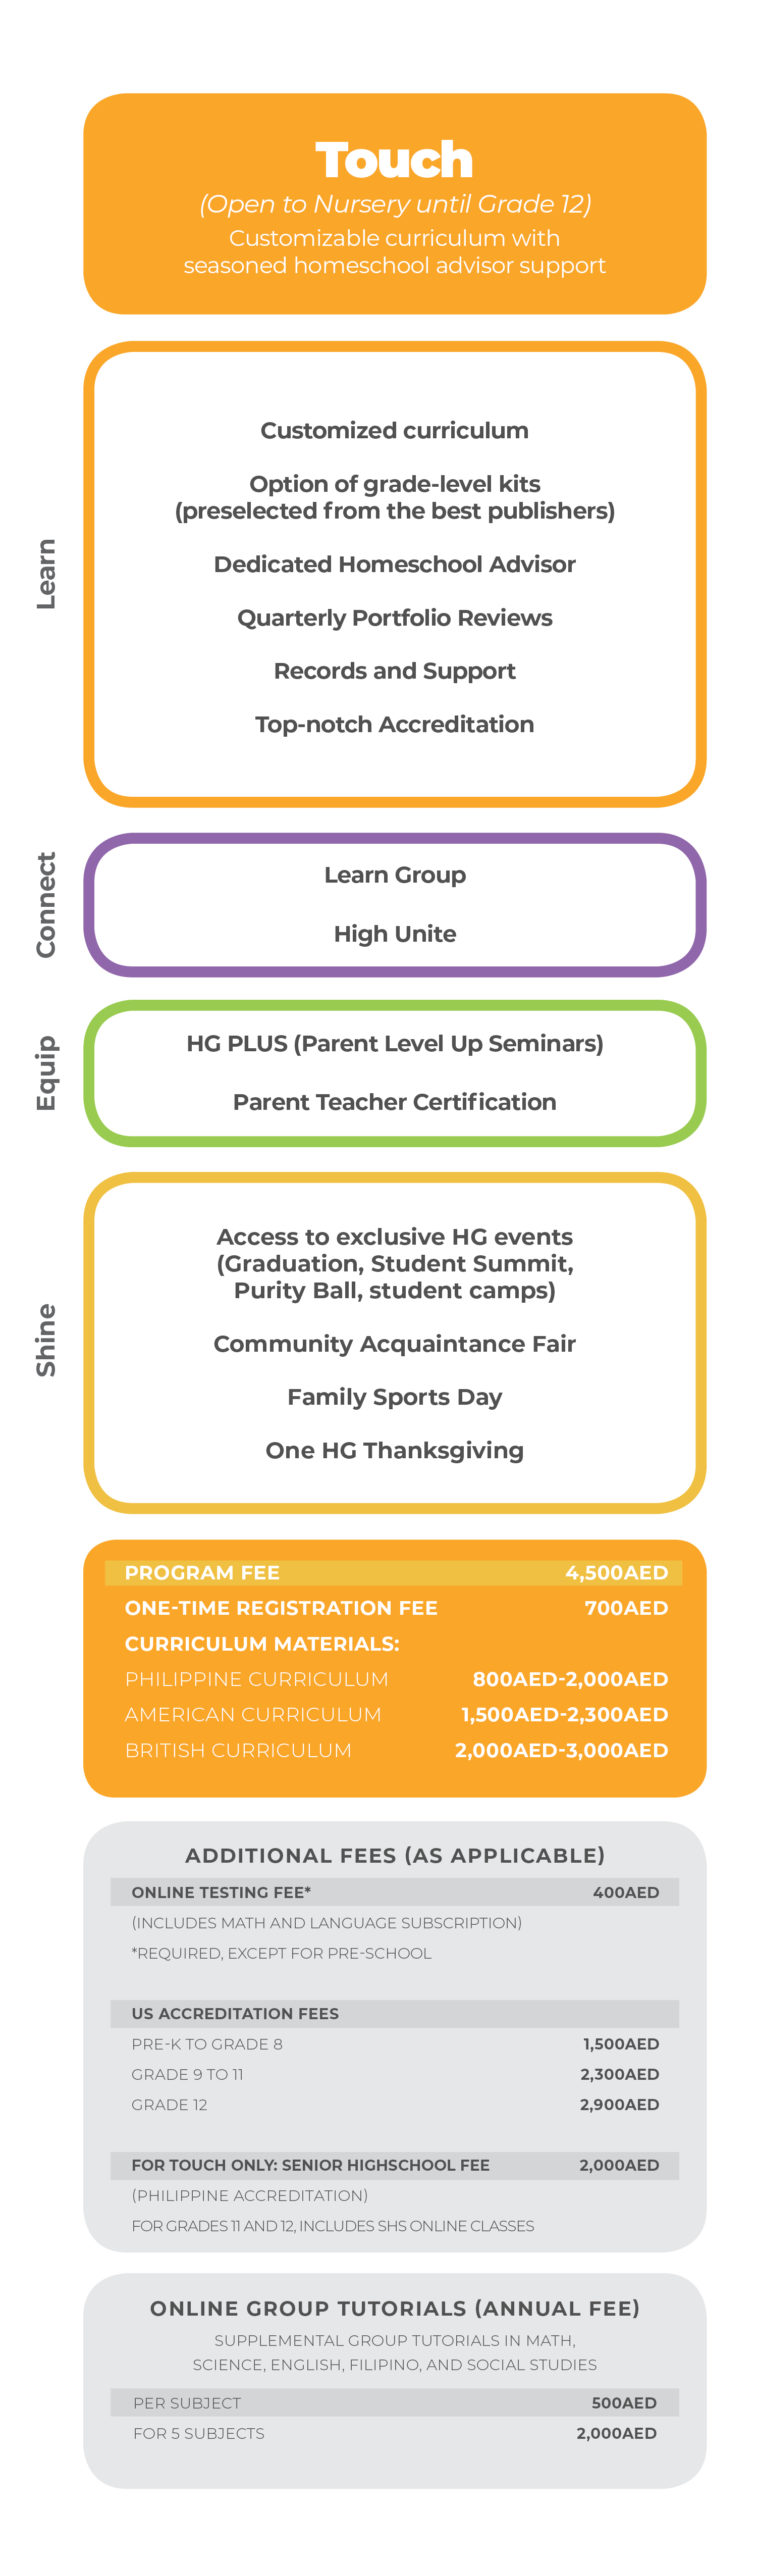 HGME Programs with Pricing 10052020